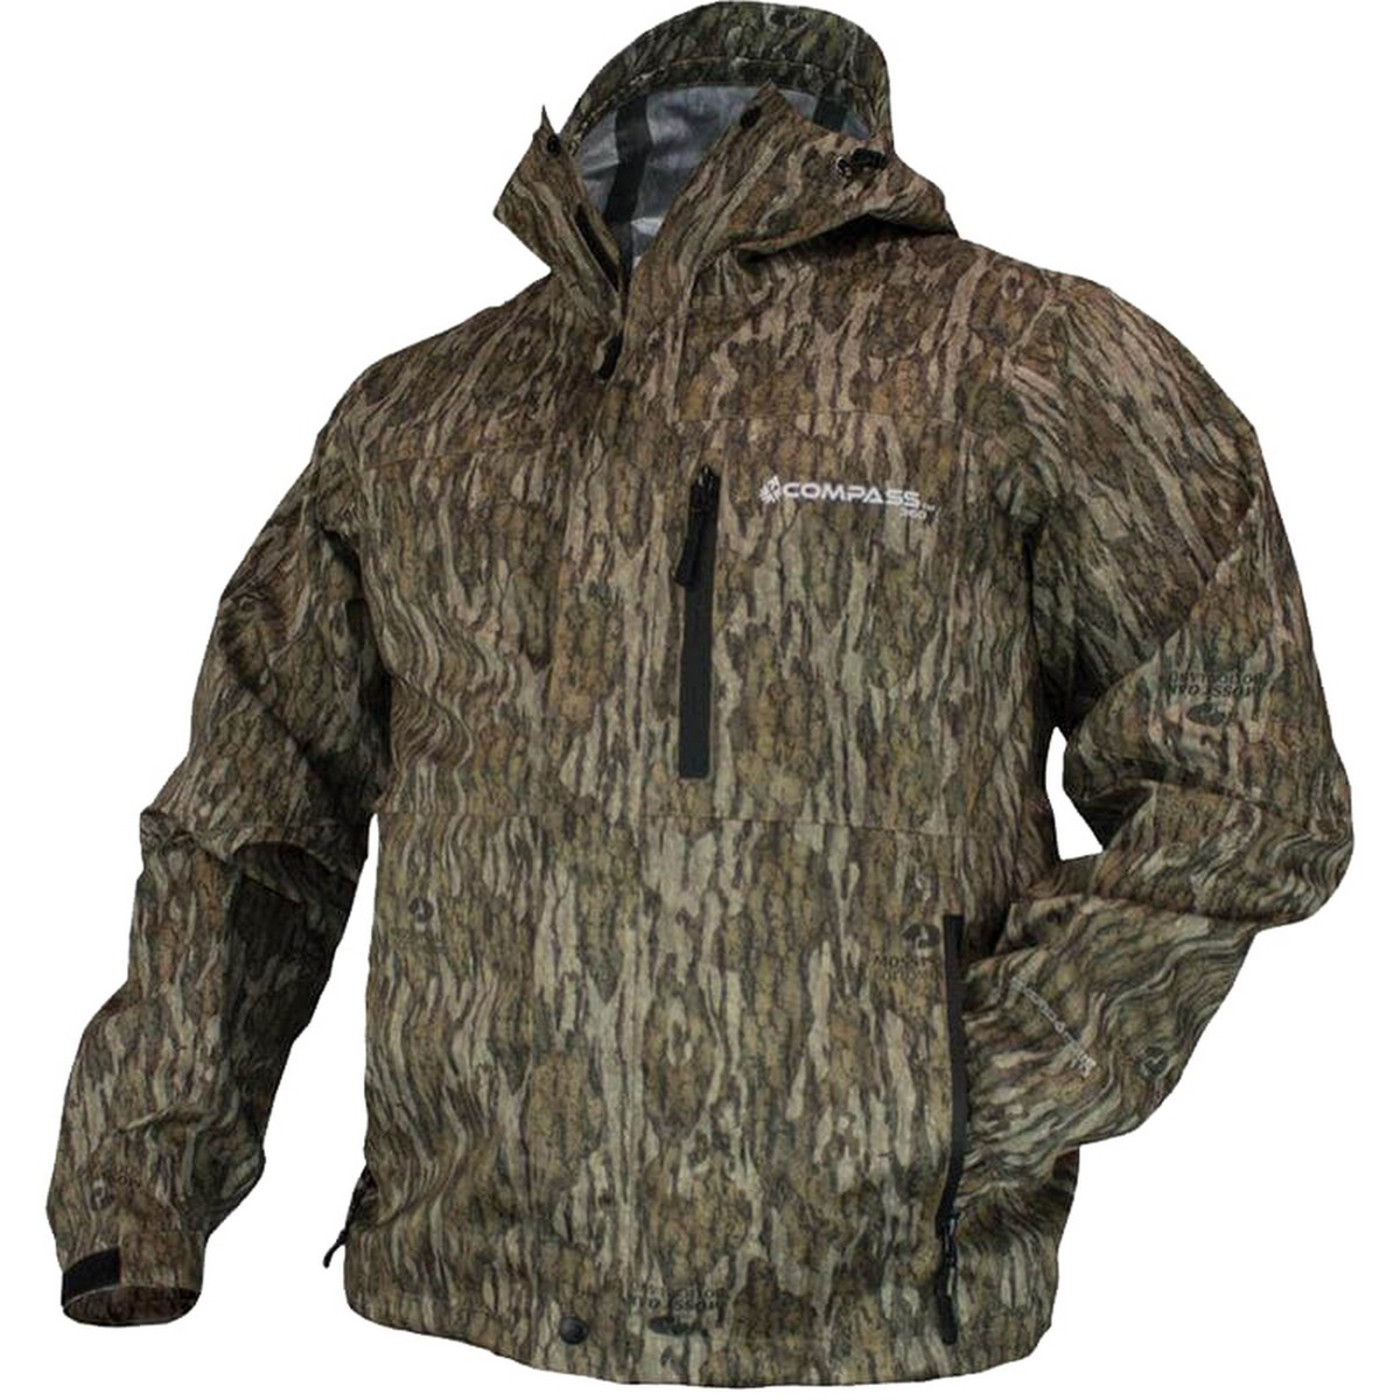 Compass 360 HydroTek Rain Jacket in Mossy Oak Bottomland Color